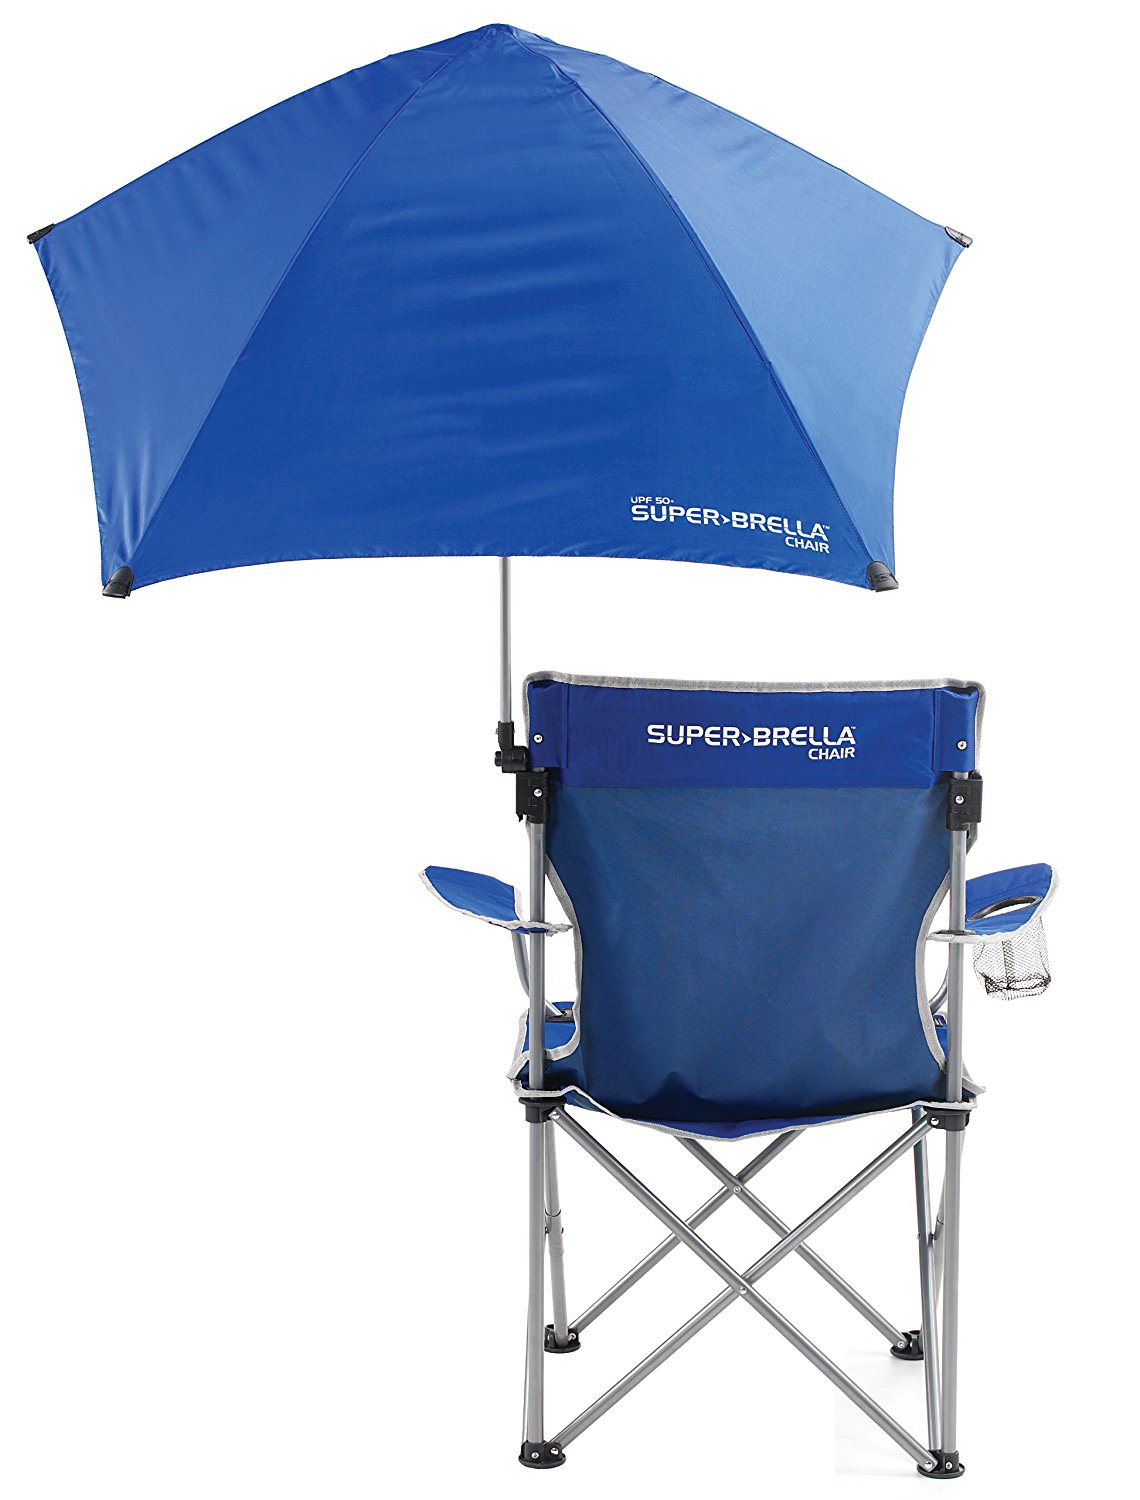 Tremendous Us 49 0 20 Off Outdoor Quik Shade Adjustable Canopy Folding Camp Chair Portable Fishing Camping Reclining Lounging Chair Heavy Duty 100Kg In Fishing Gmtry Best Dining Table And Chair Ideas Images Gmtryco